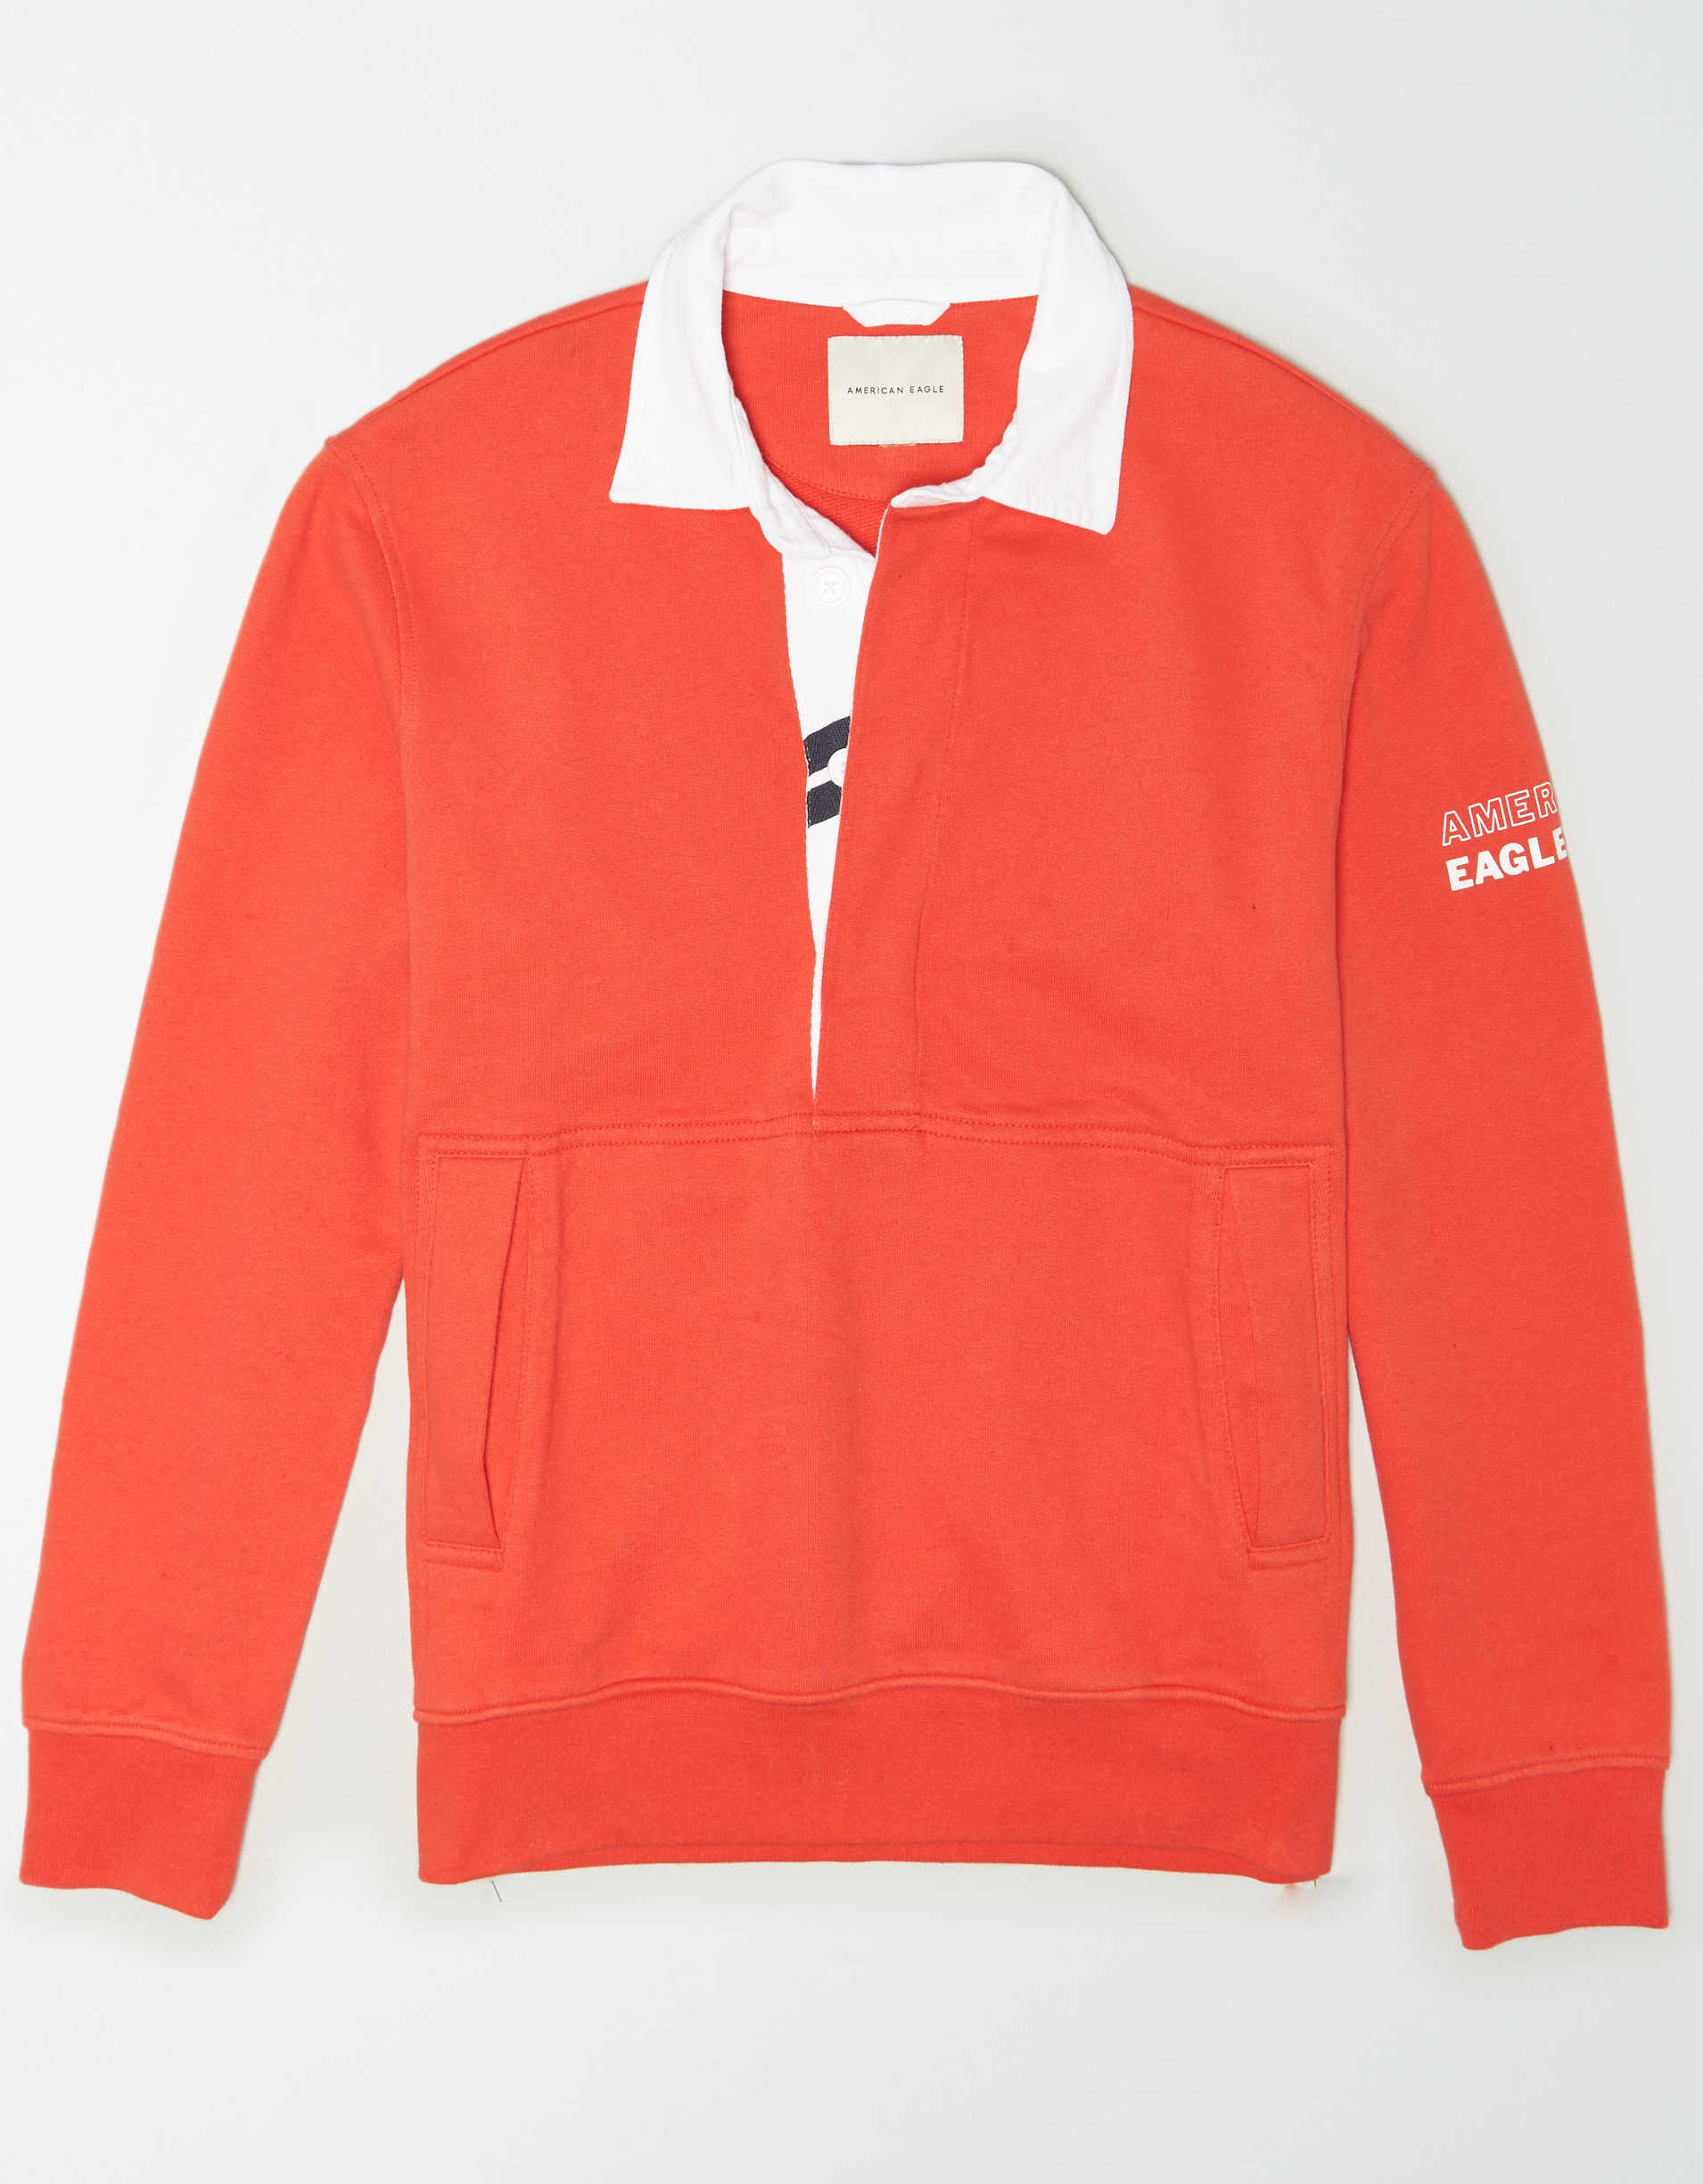 AE Fleece Graphic Rugby Sweatshirt